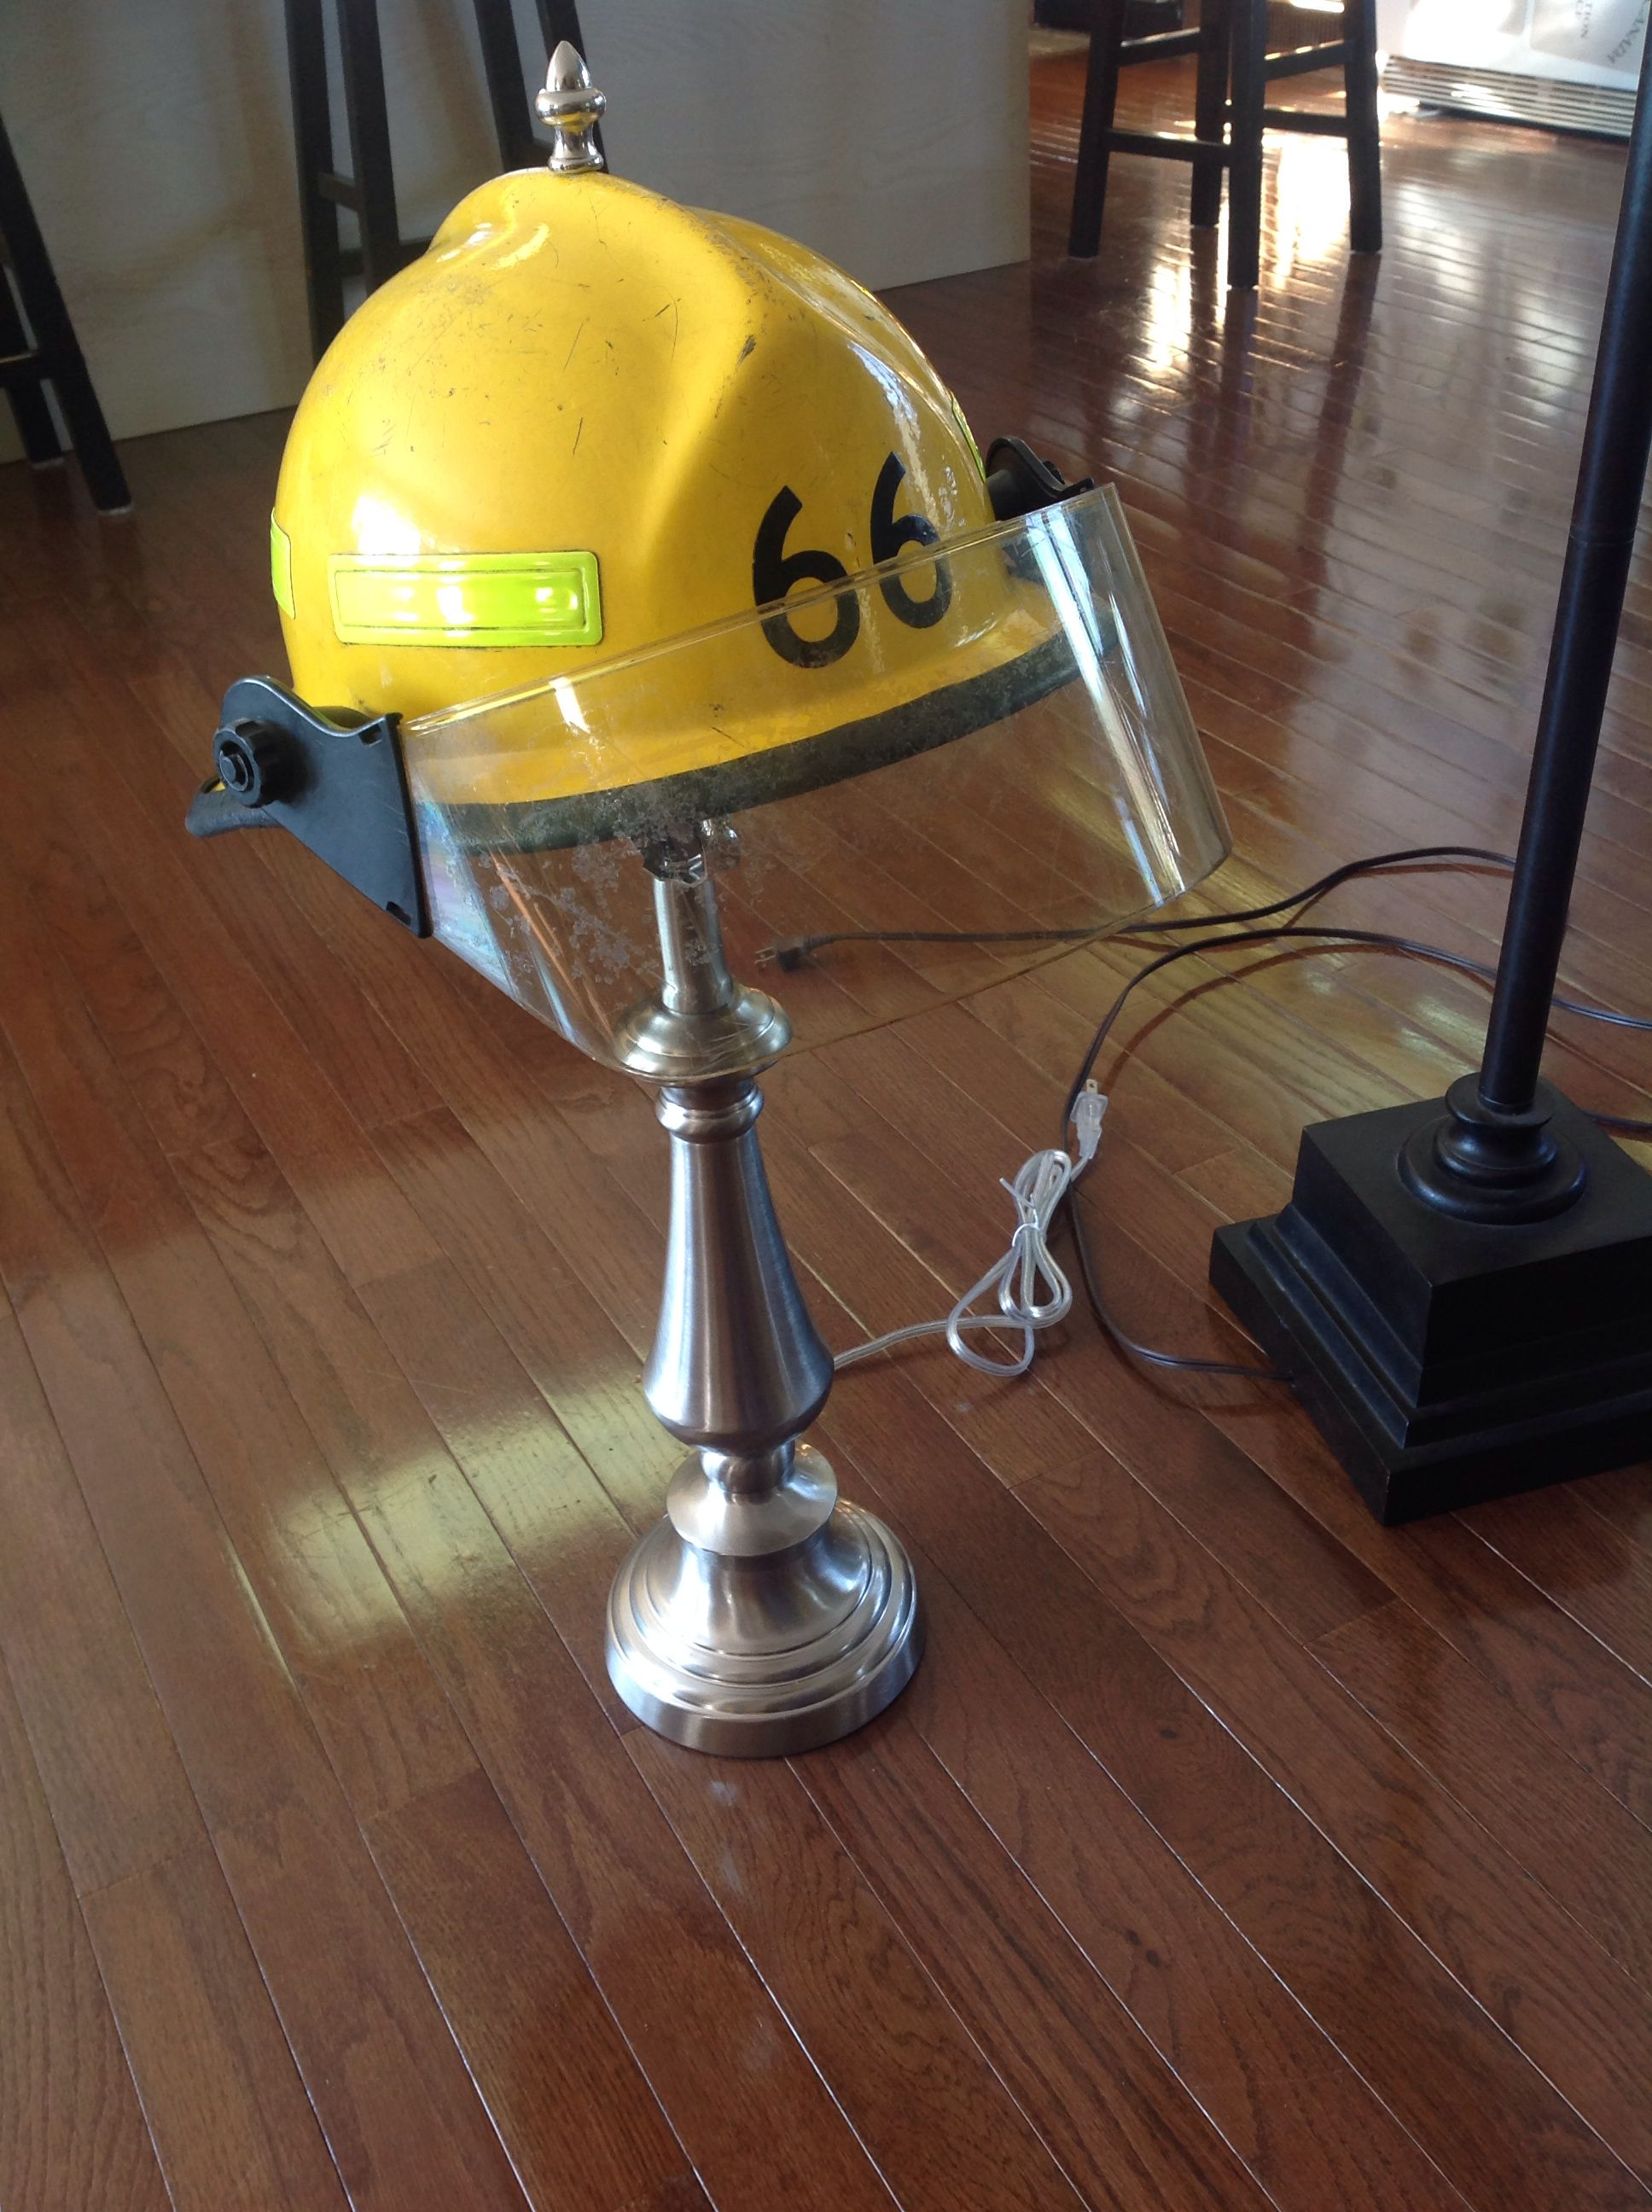 Bedside Lamp100 Firefighter Lampe Plus ShippingRecherche Y6gybfv7